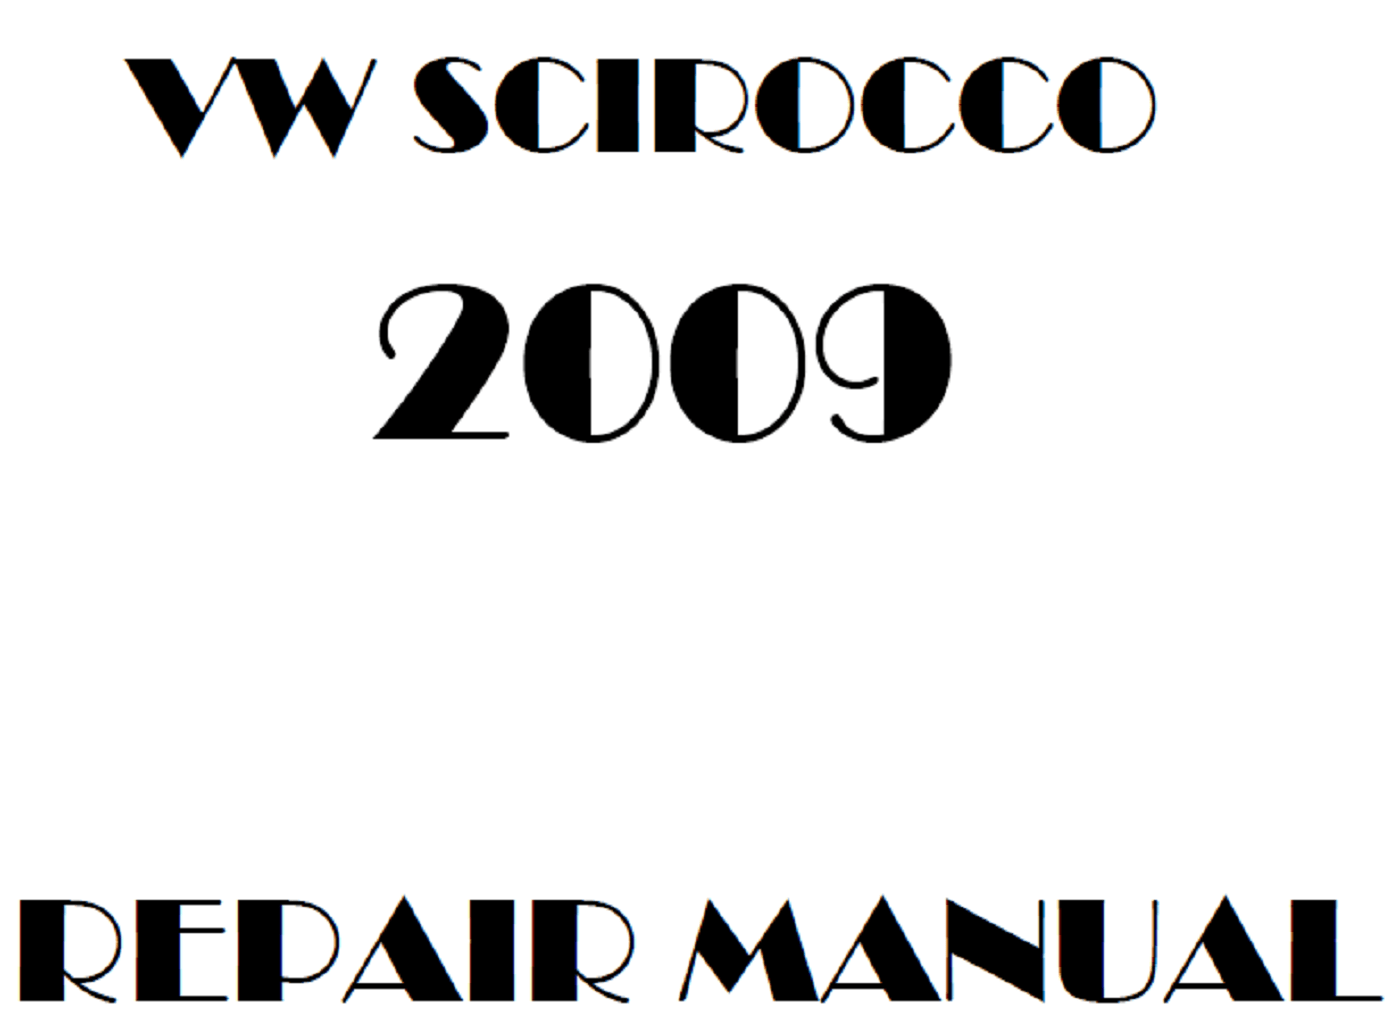 2009 Volkswagen Scirocco repair manual